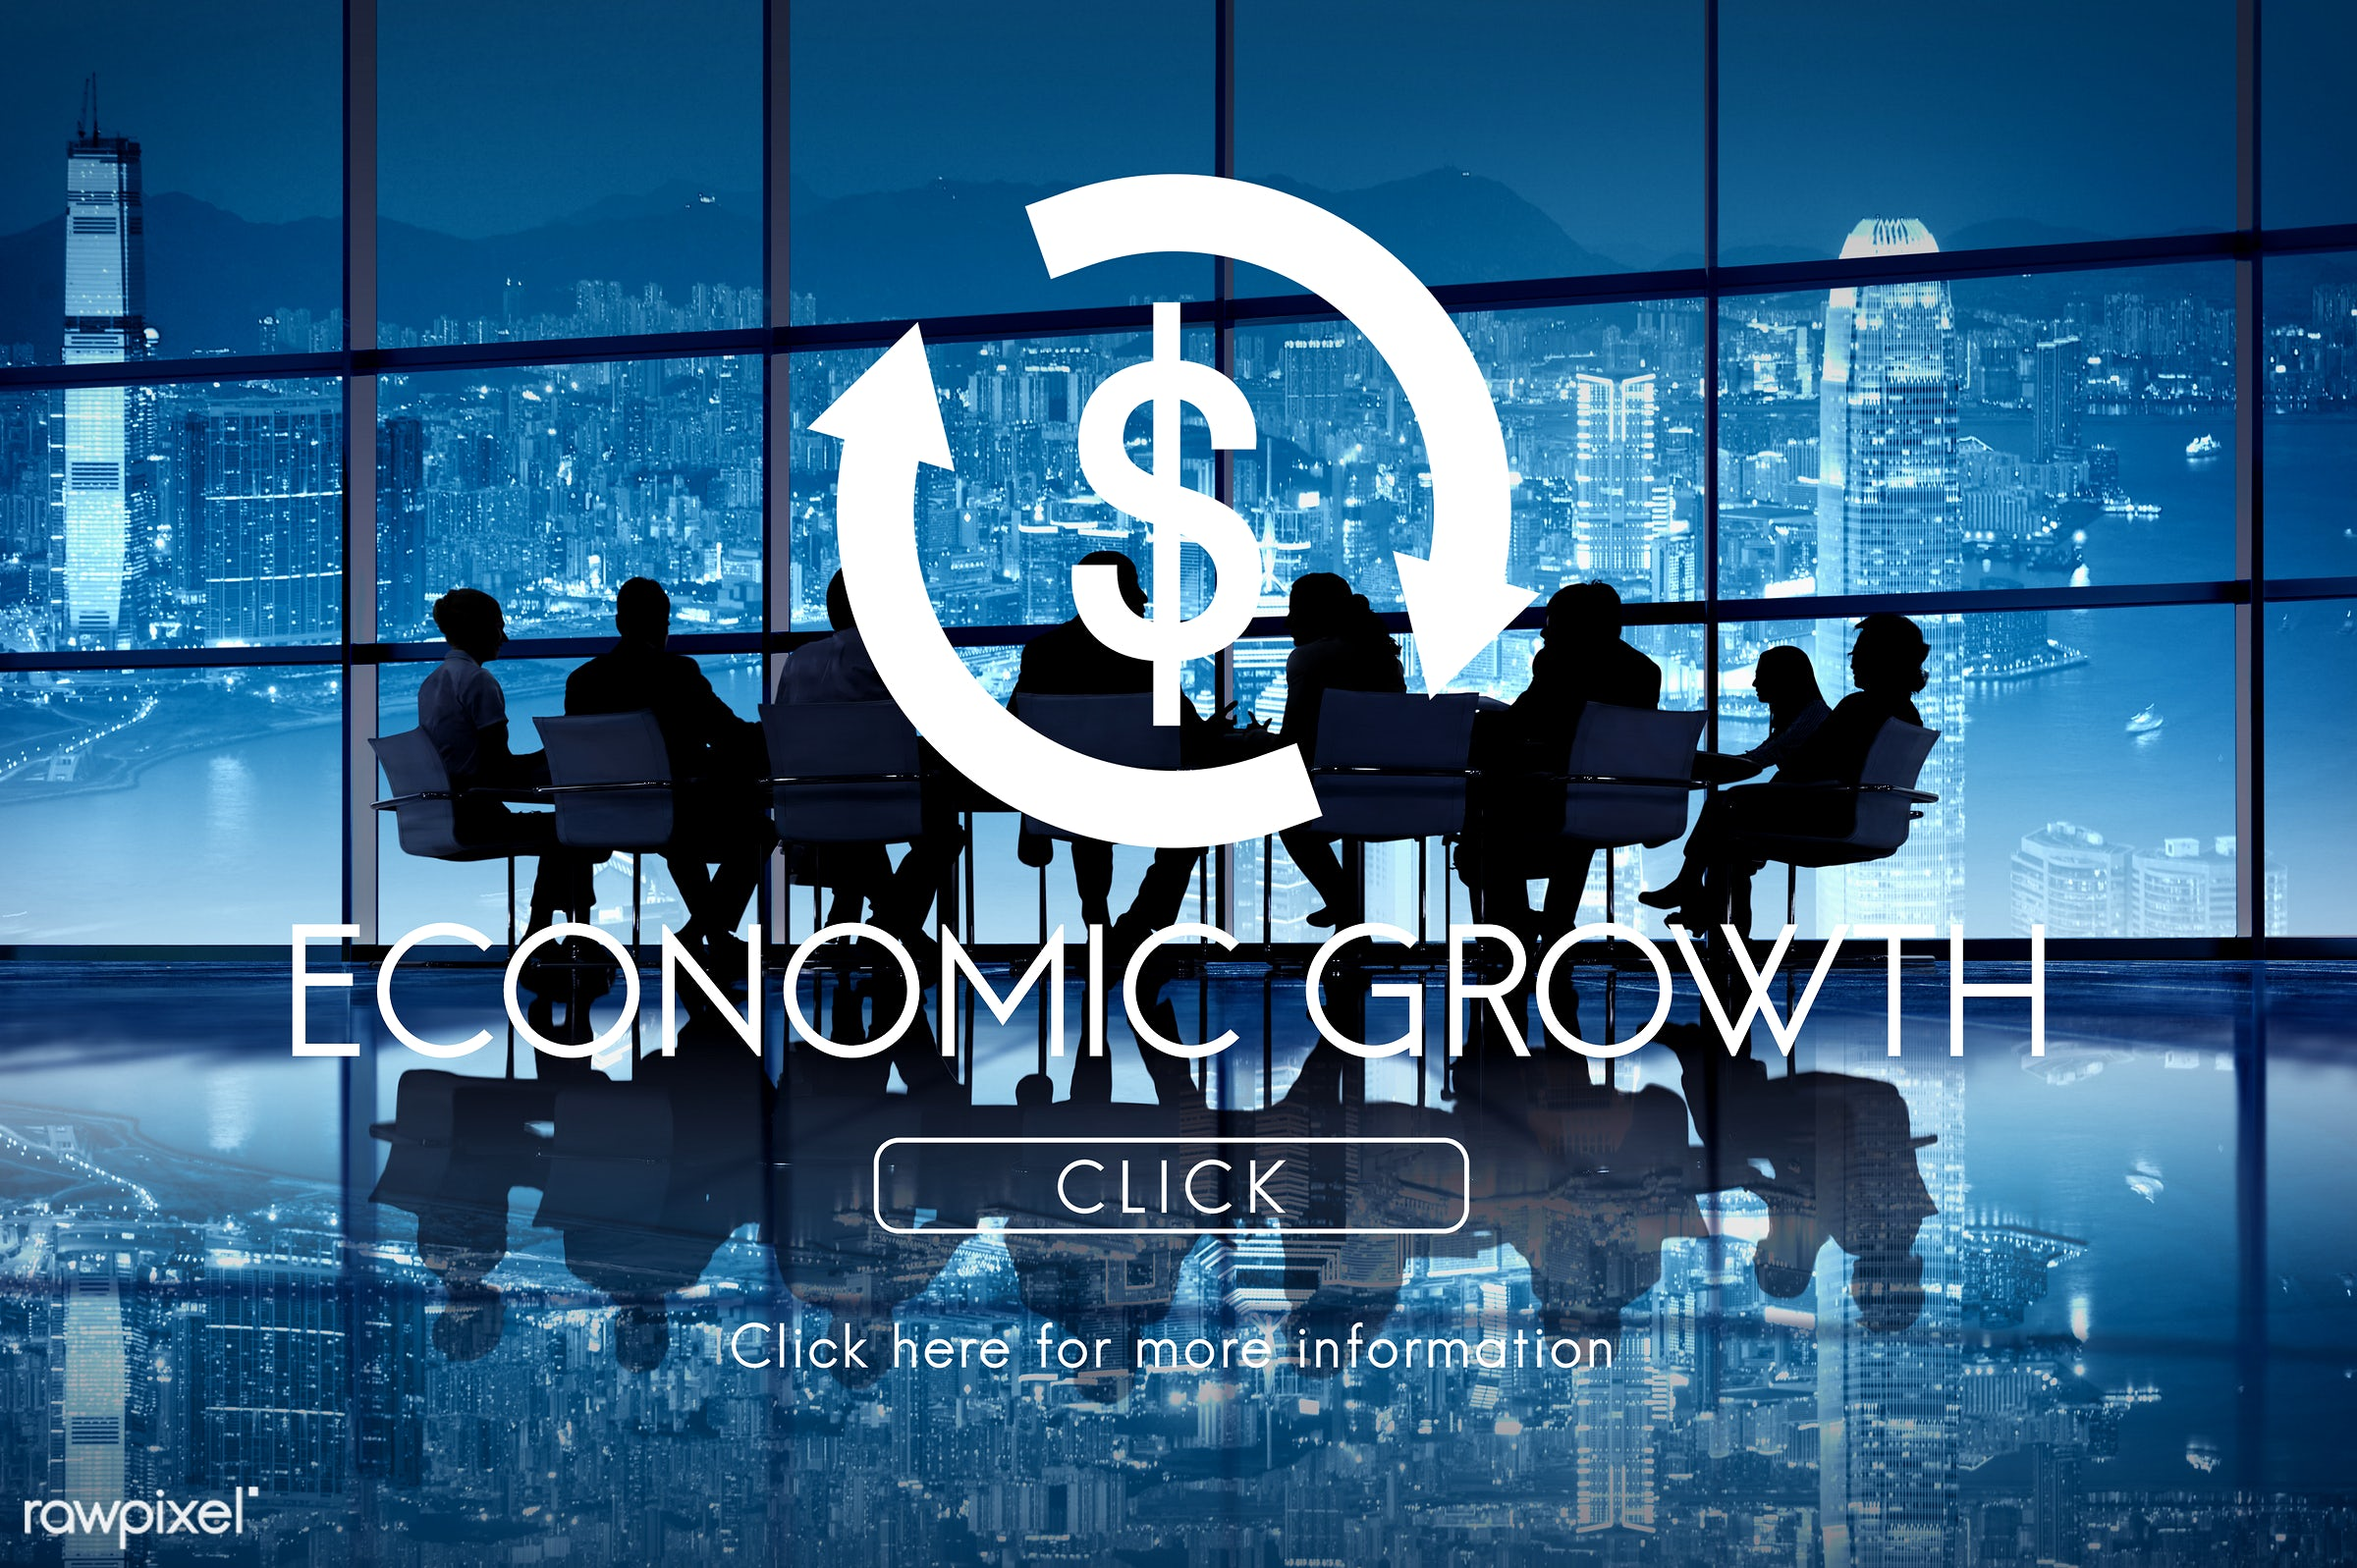 invest, boom and bust cycle, building, business, business cycle, business people, businessmen, businesswomen, cityscape,...